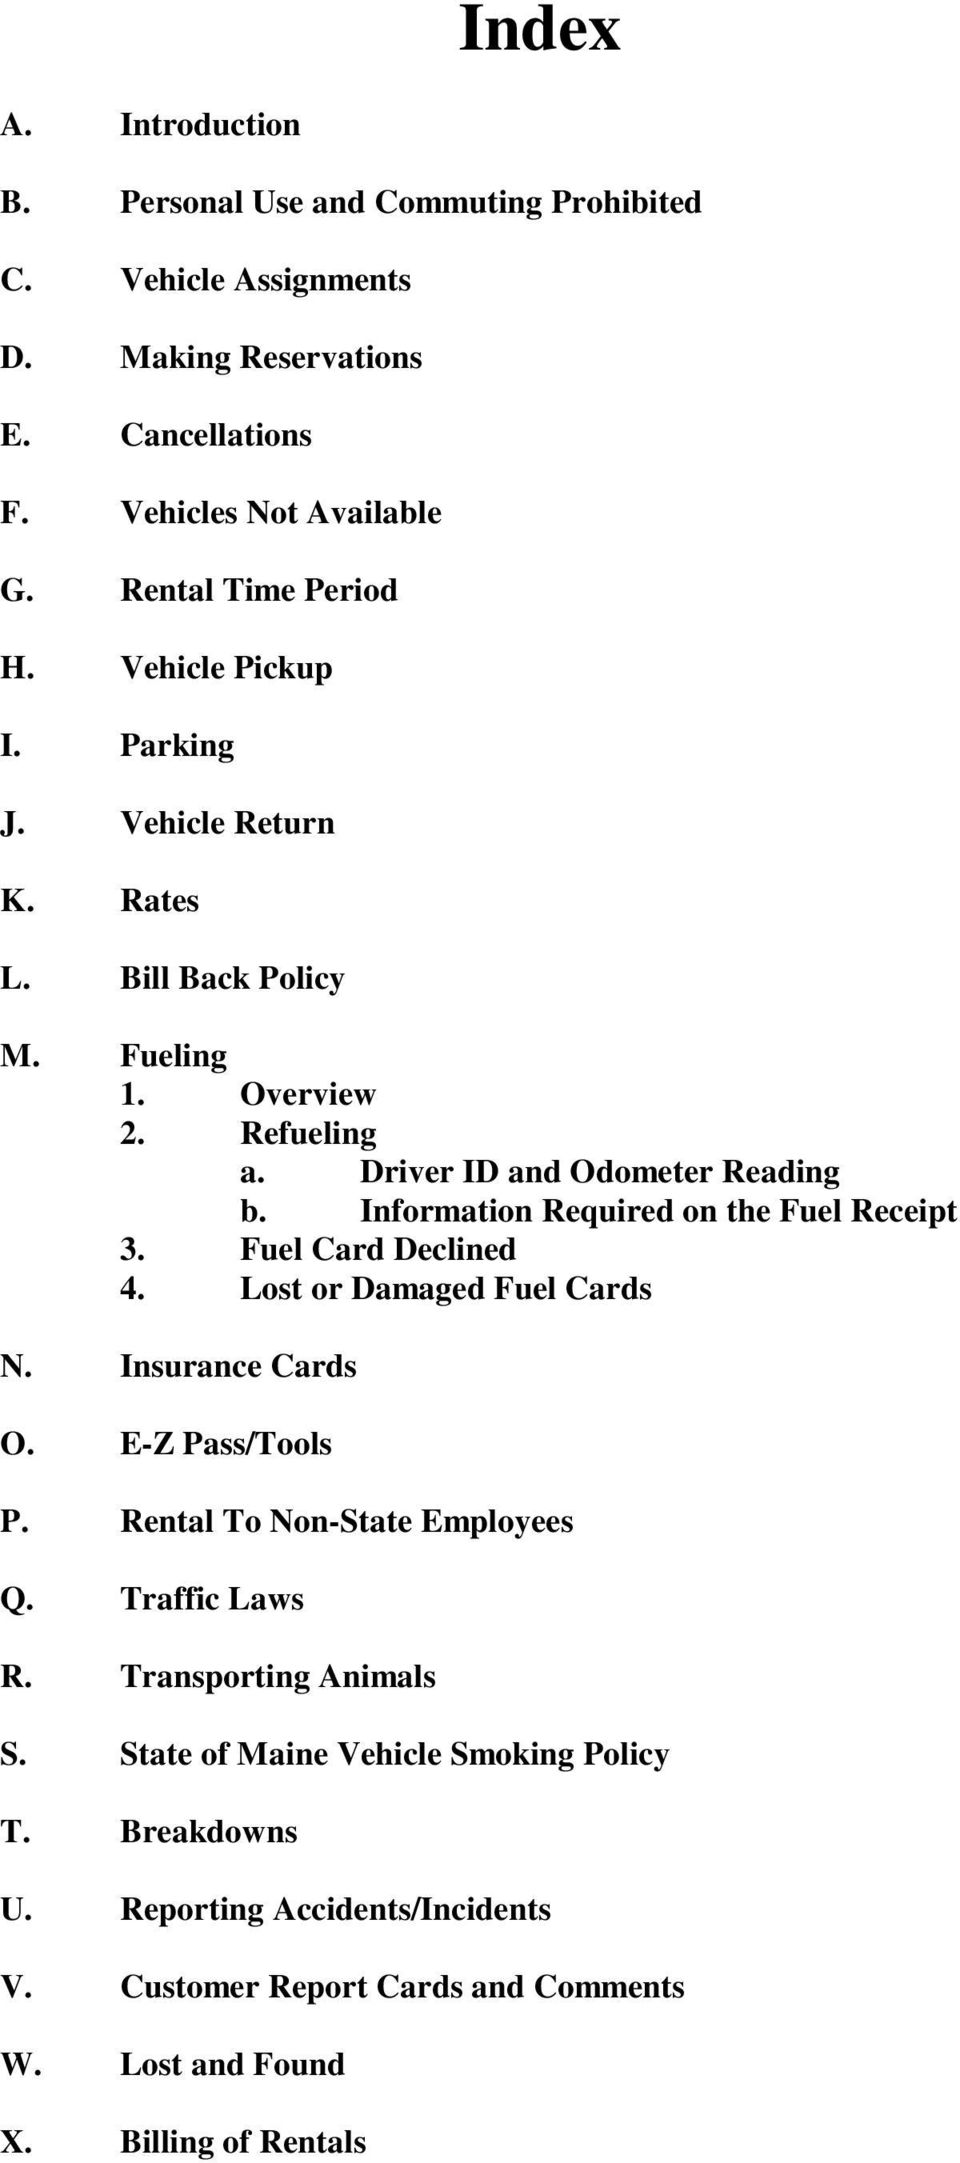 Information Required on the Fuel Receipt 3. Fuel Card Declined 4. Lost or Damaged Fuel Cards N. Insurance Cards O. E-Z Pass/Tools P. Rental To Non-State Employees Q.